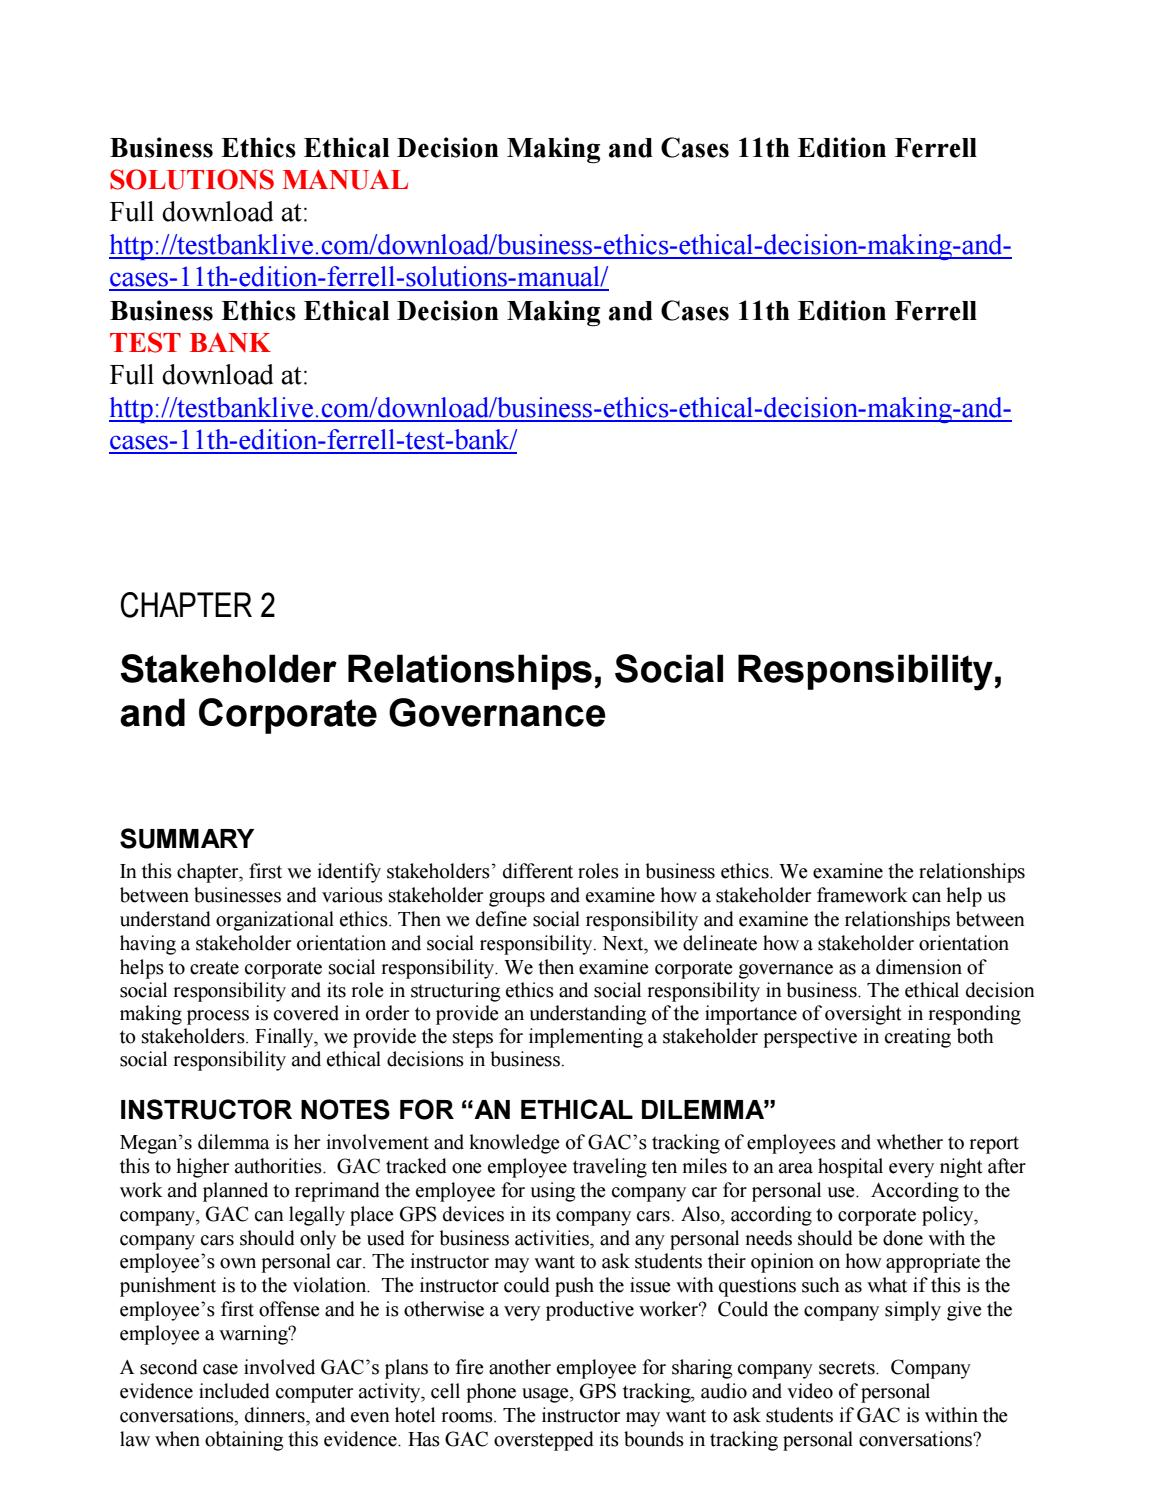 Business ethics ethical decision making and cases 11th